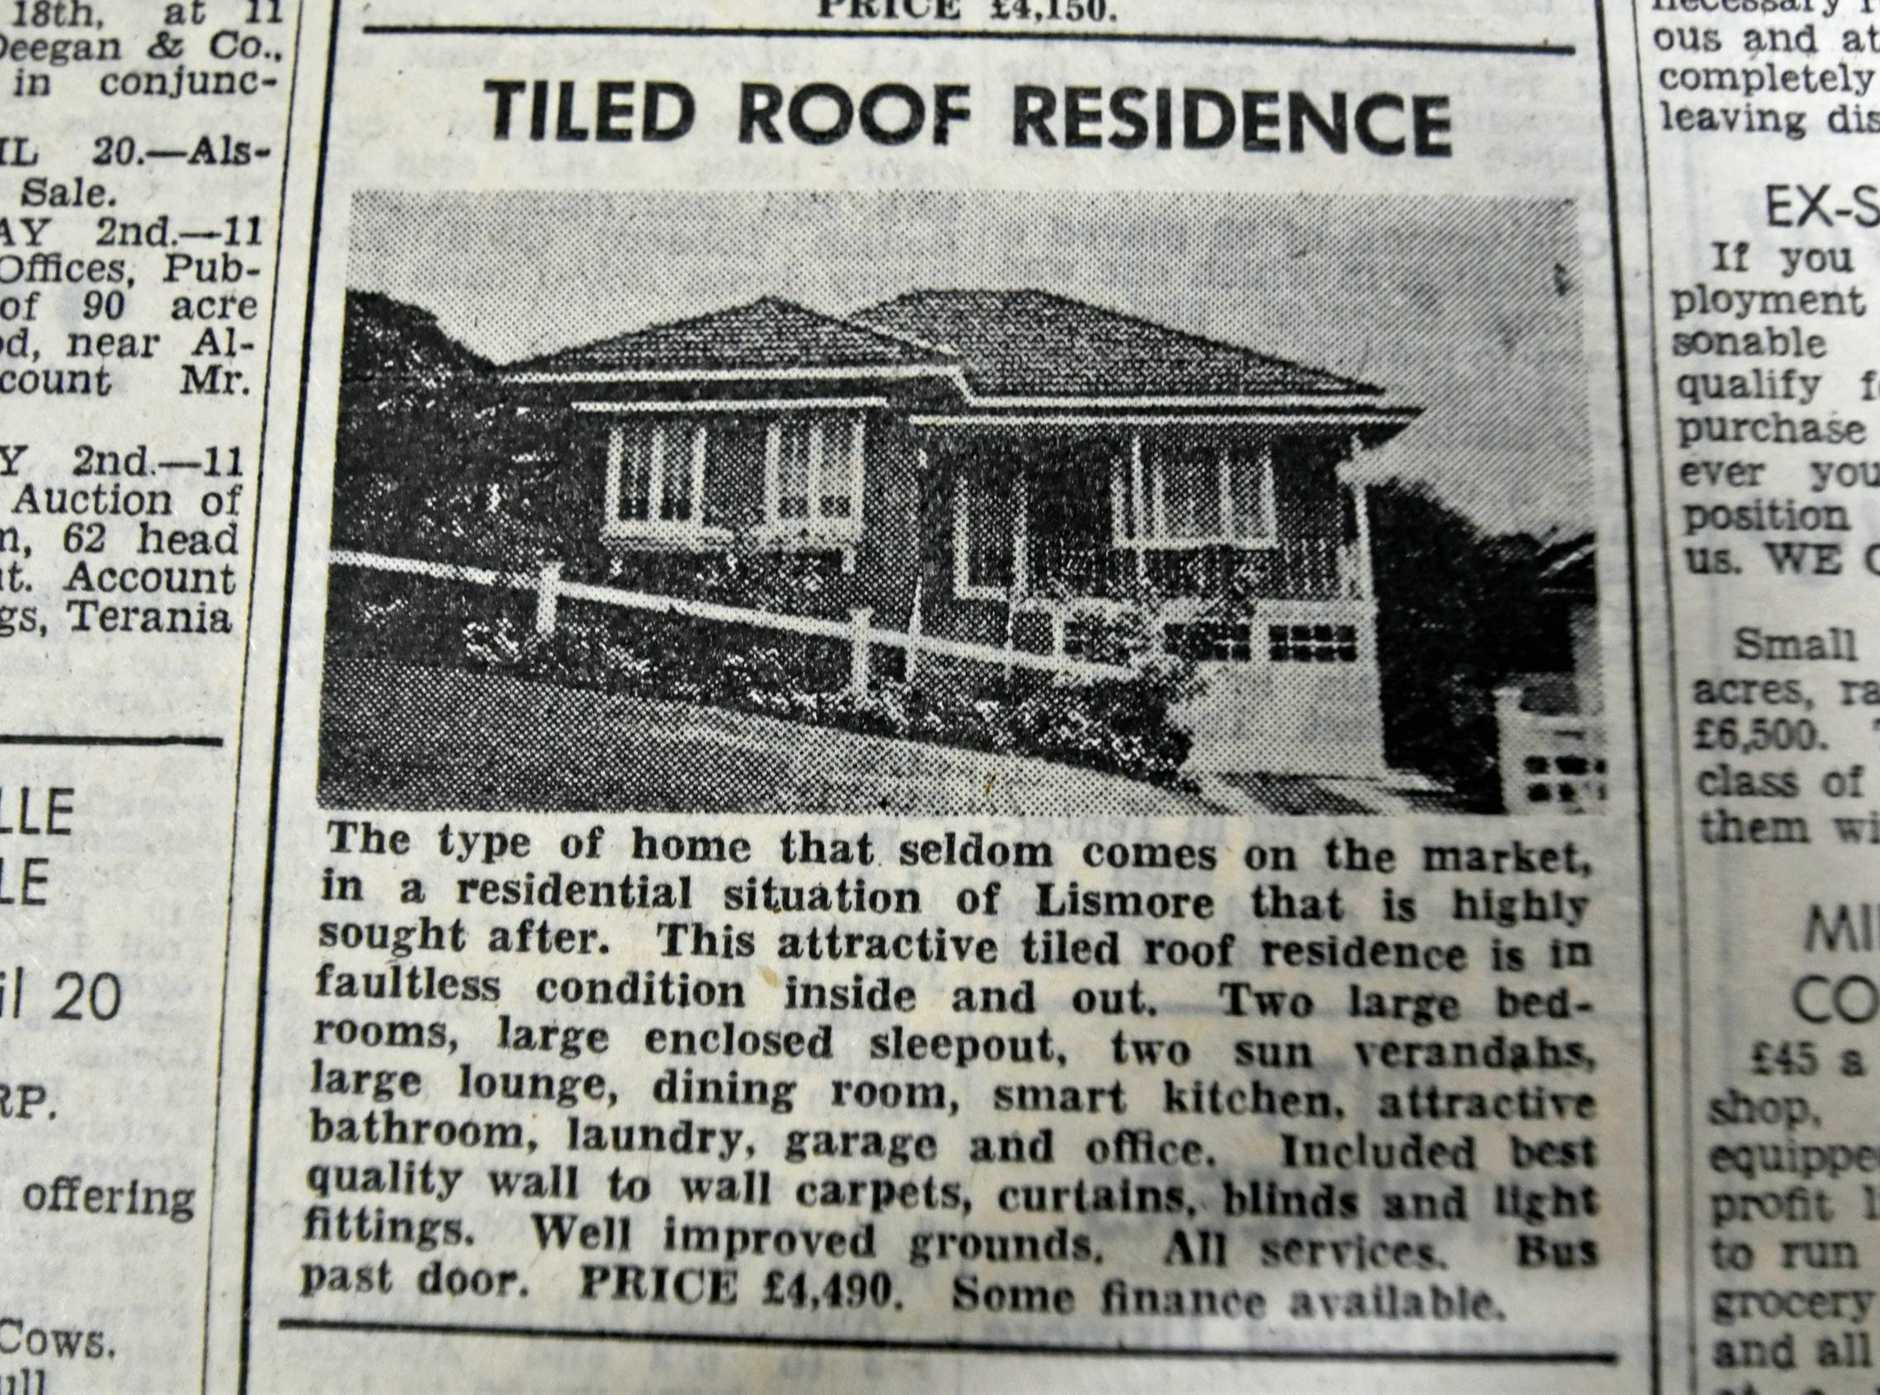 A house listed for sale 59 years ago in Lismore.